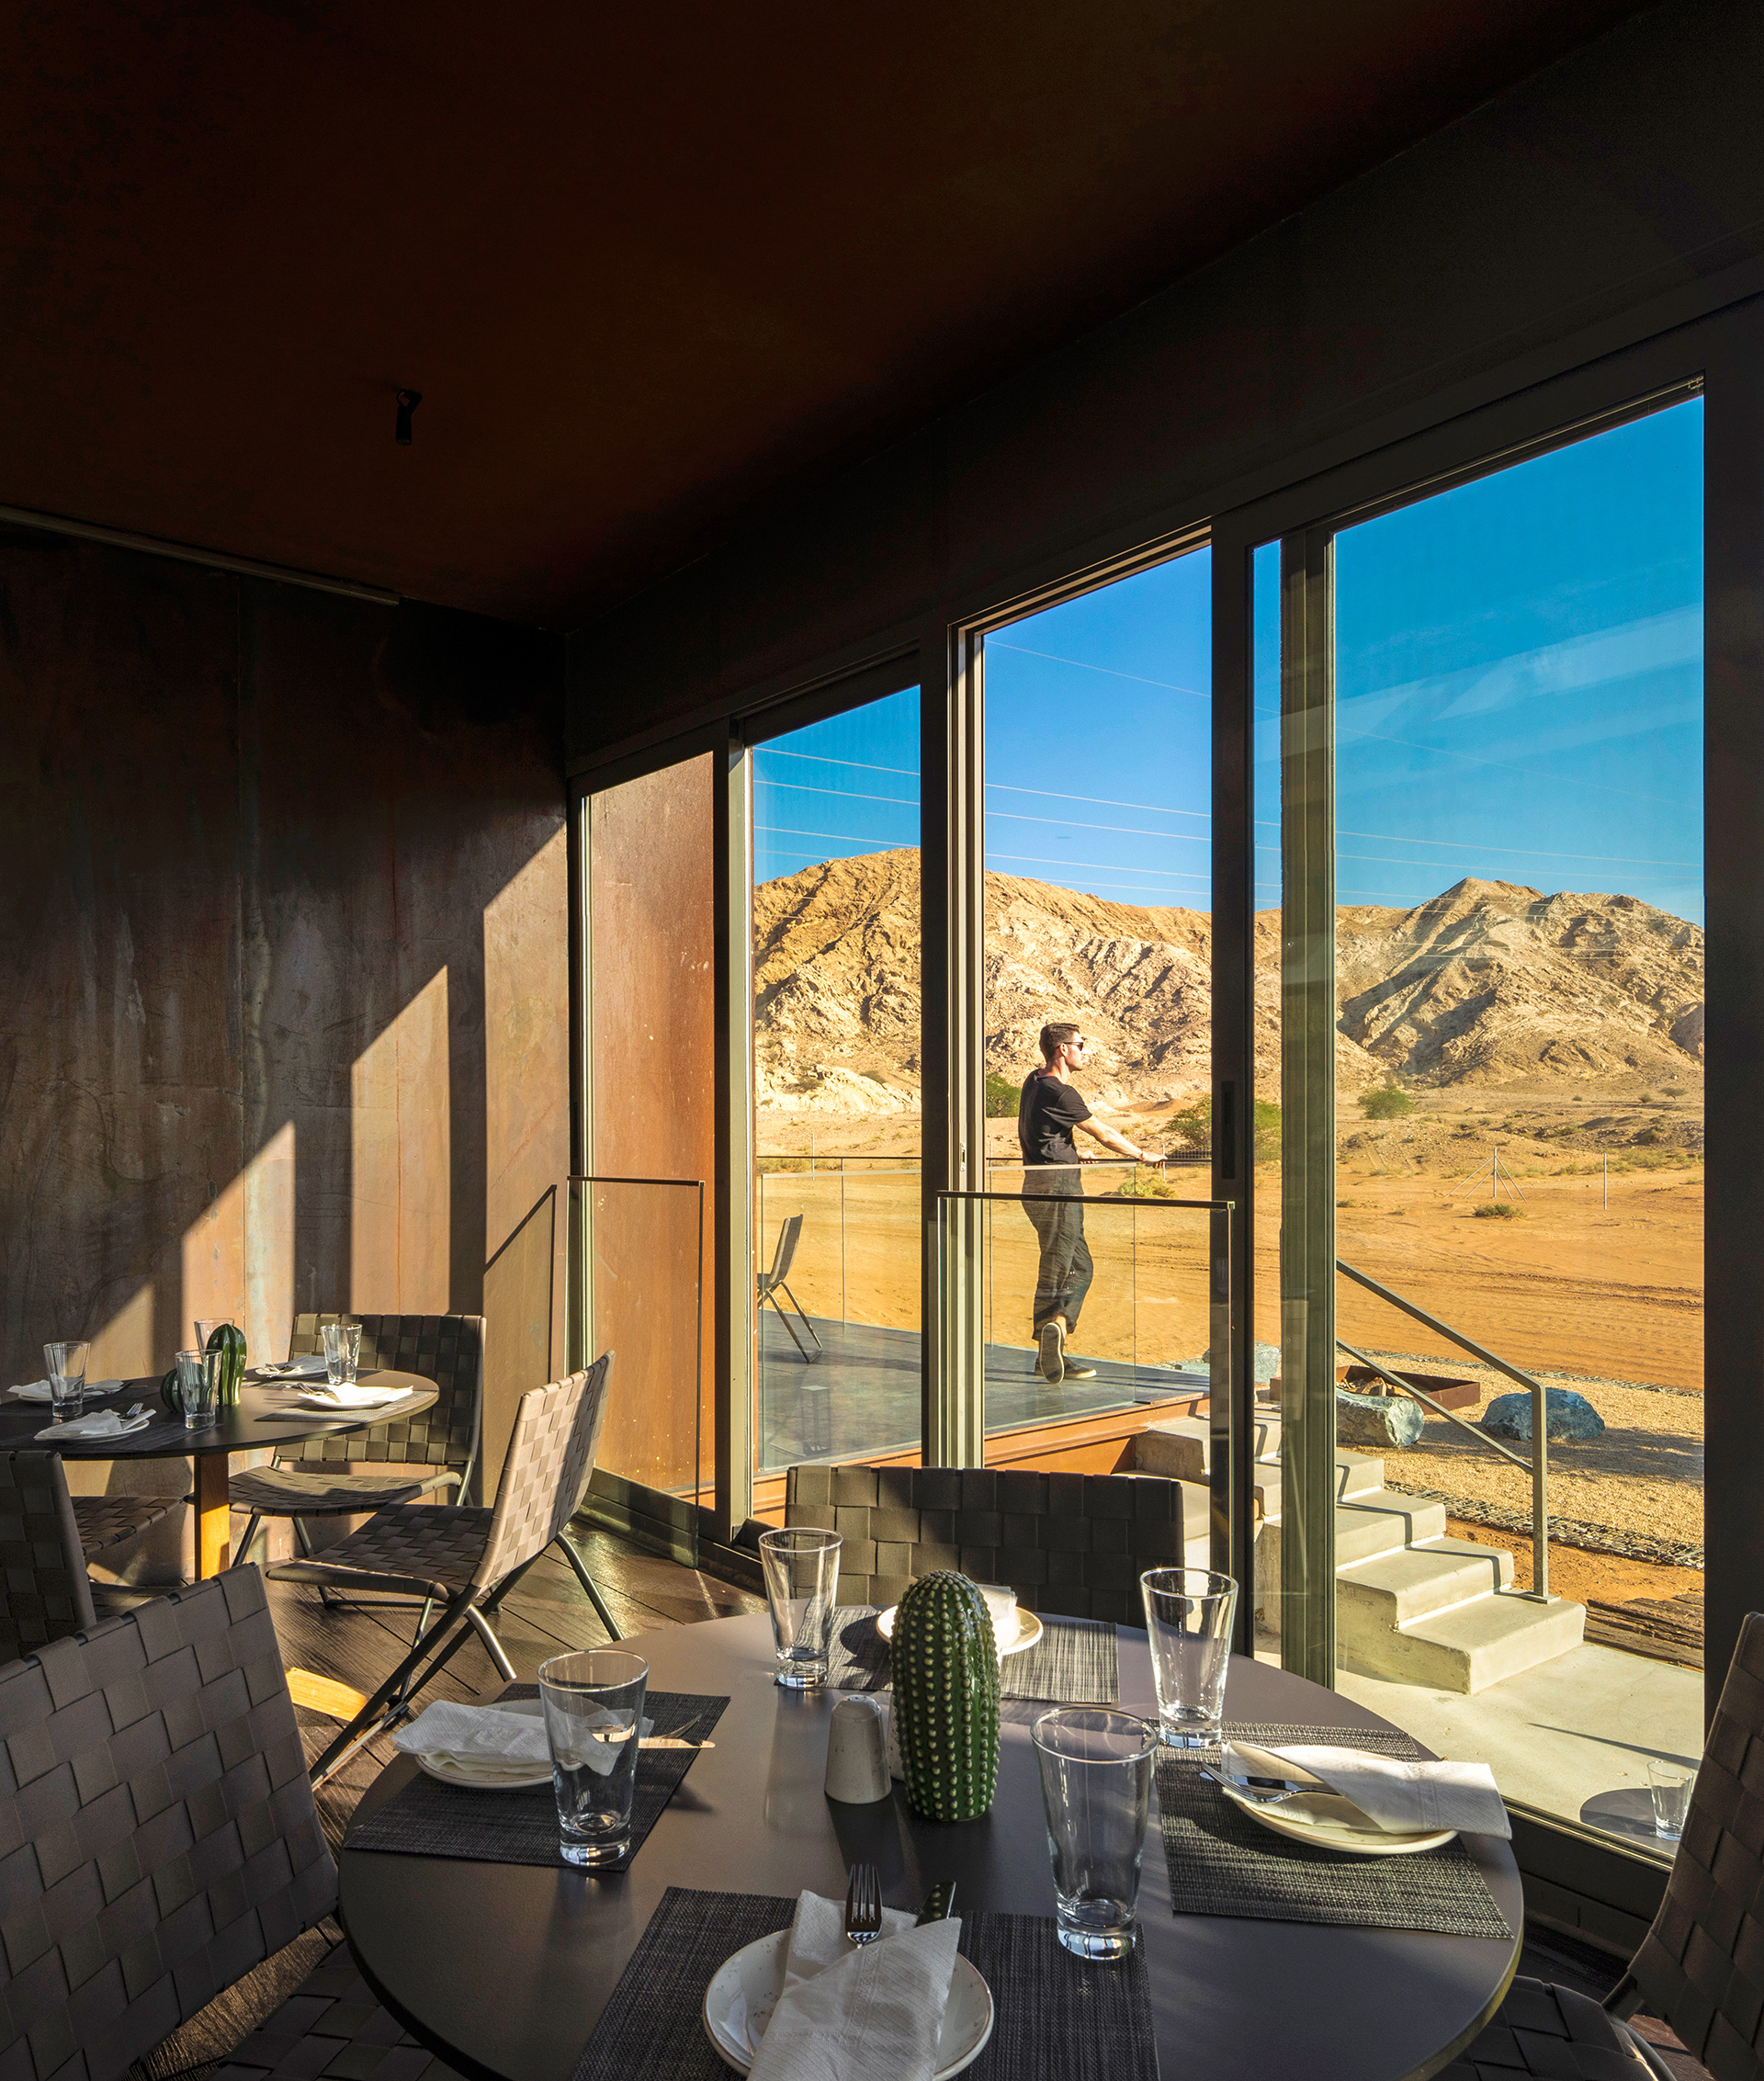 A portion of the dining room overlooking the desert landscape | Al Faya Lodge | Anarchitect | STIRworld